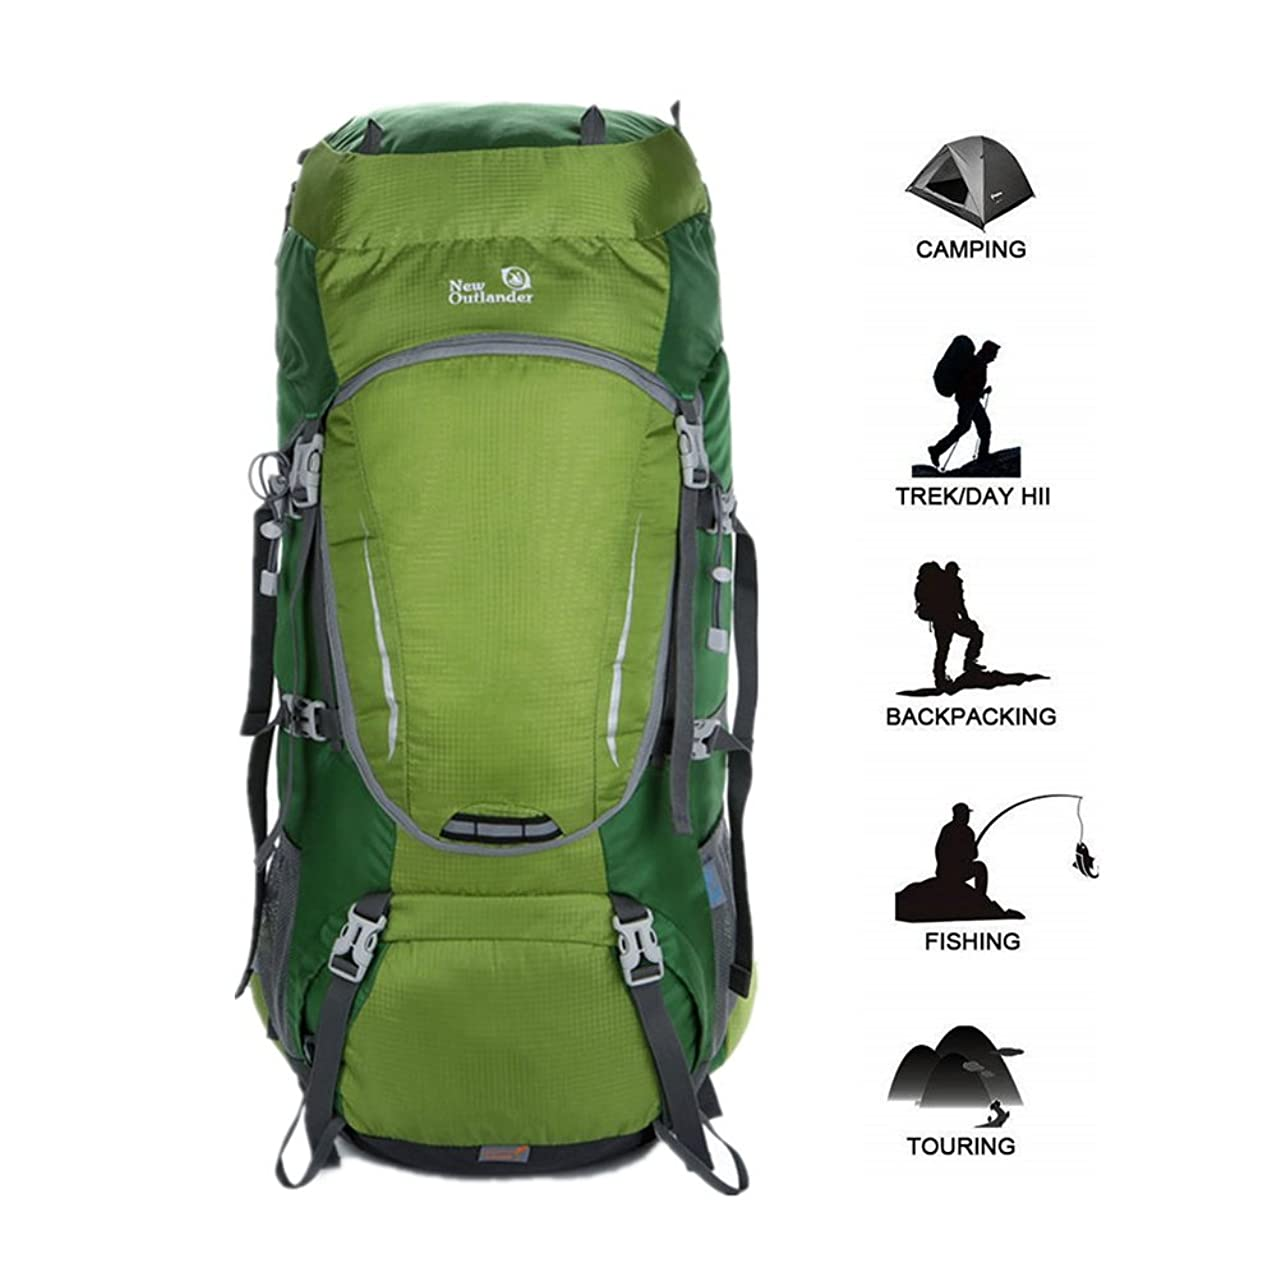 UNISTRENGH 60L Internal Frame Hiking Backpack Nylon Water-Resistant Trekking Bag with Rain Cover for Outdoor Climbing Camping Caving Travel Mountaineering